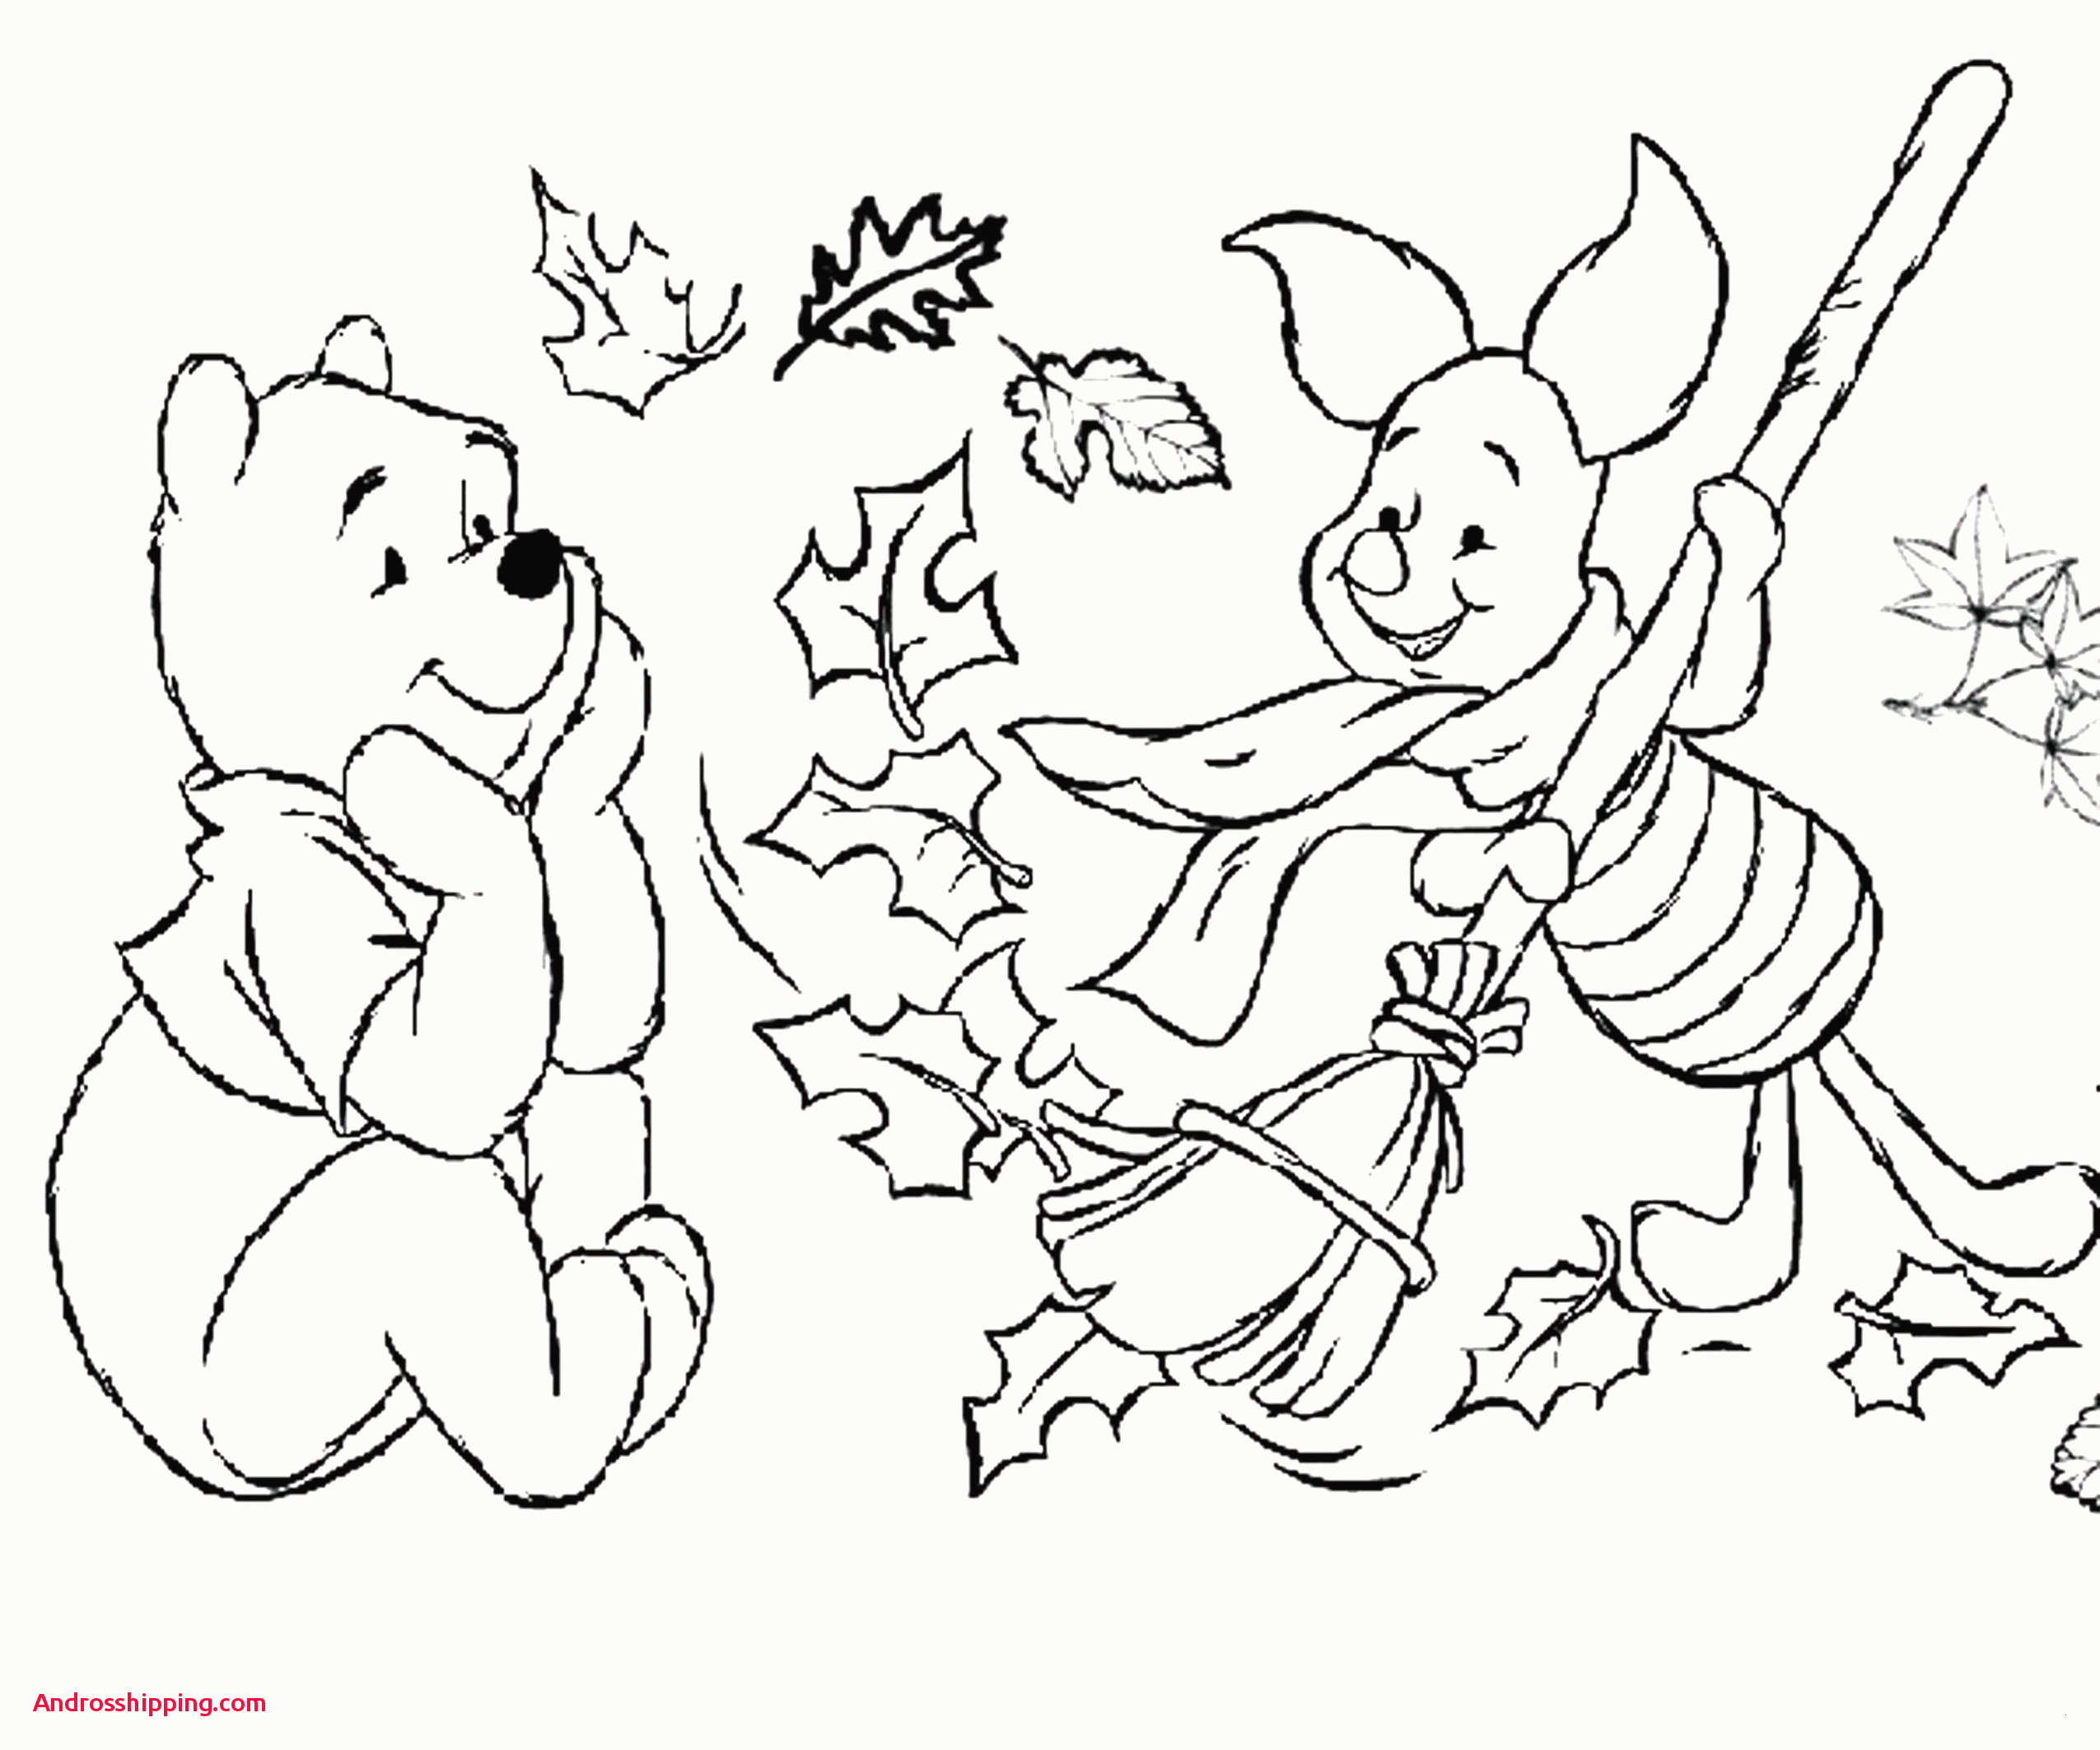 fall flowers coloring pages Collection-Fall Flowers Coloring Pages Unique Coloring Sheets Flowers New Fall Coloring Pages 0d Page for Kids 9-o